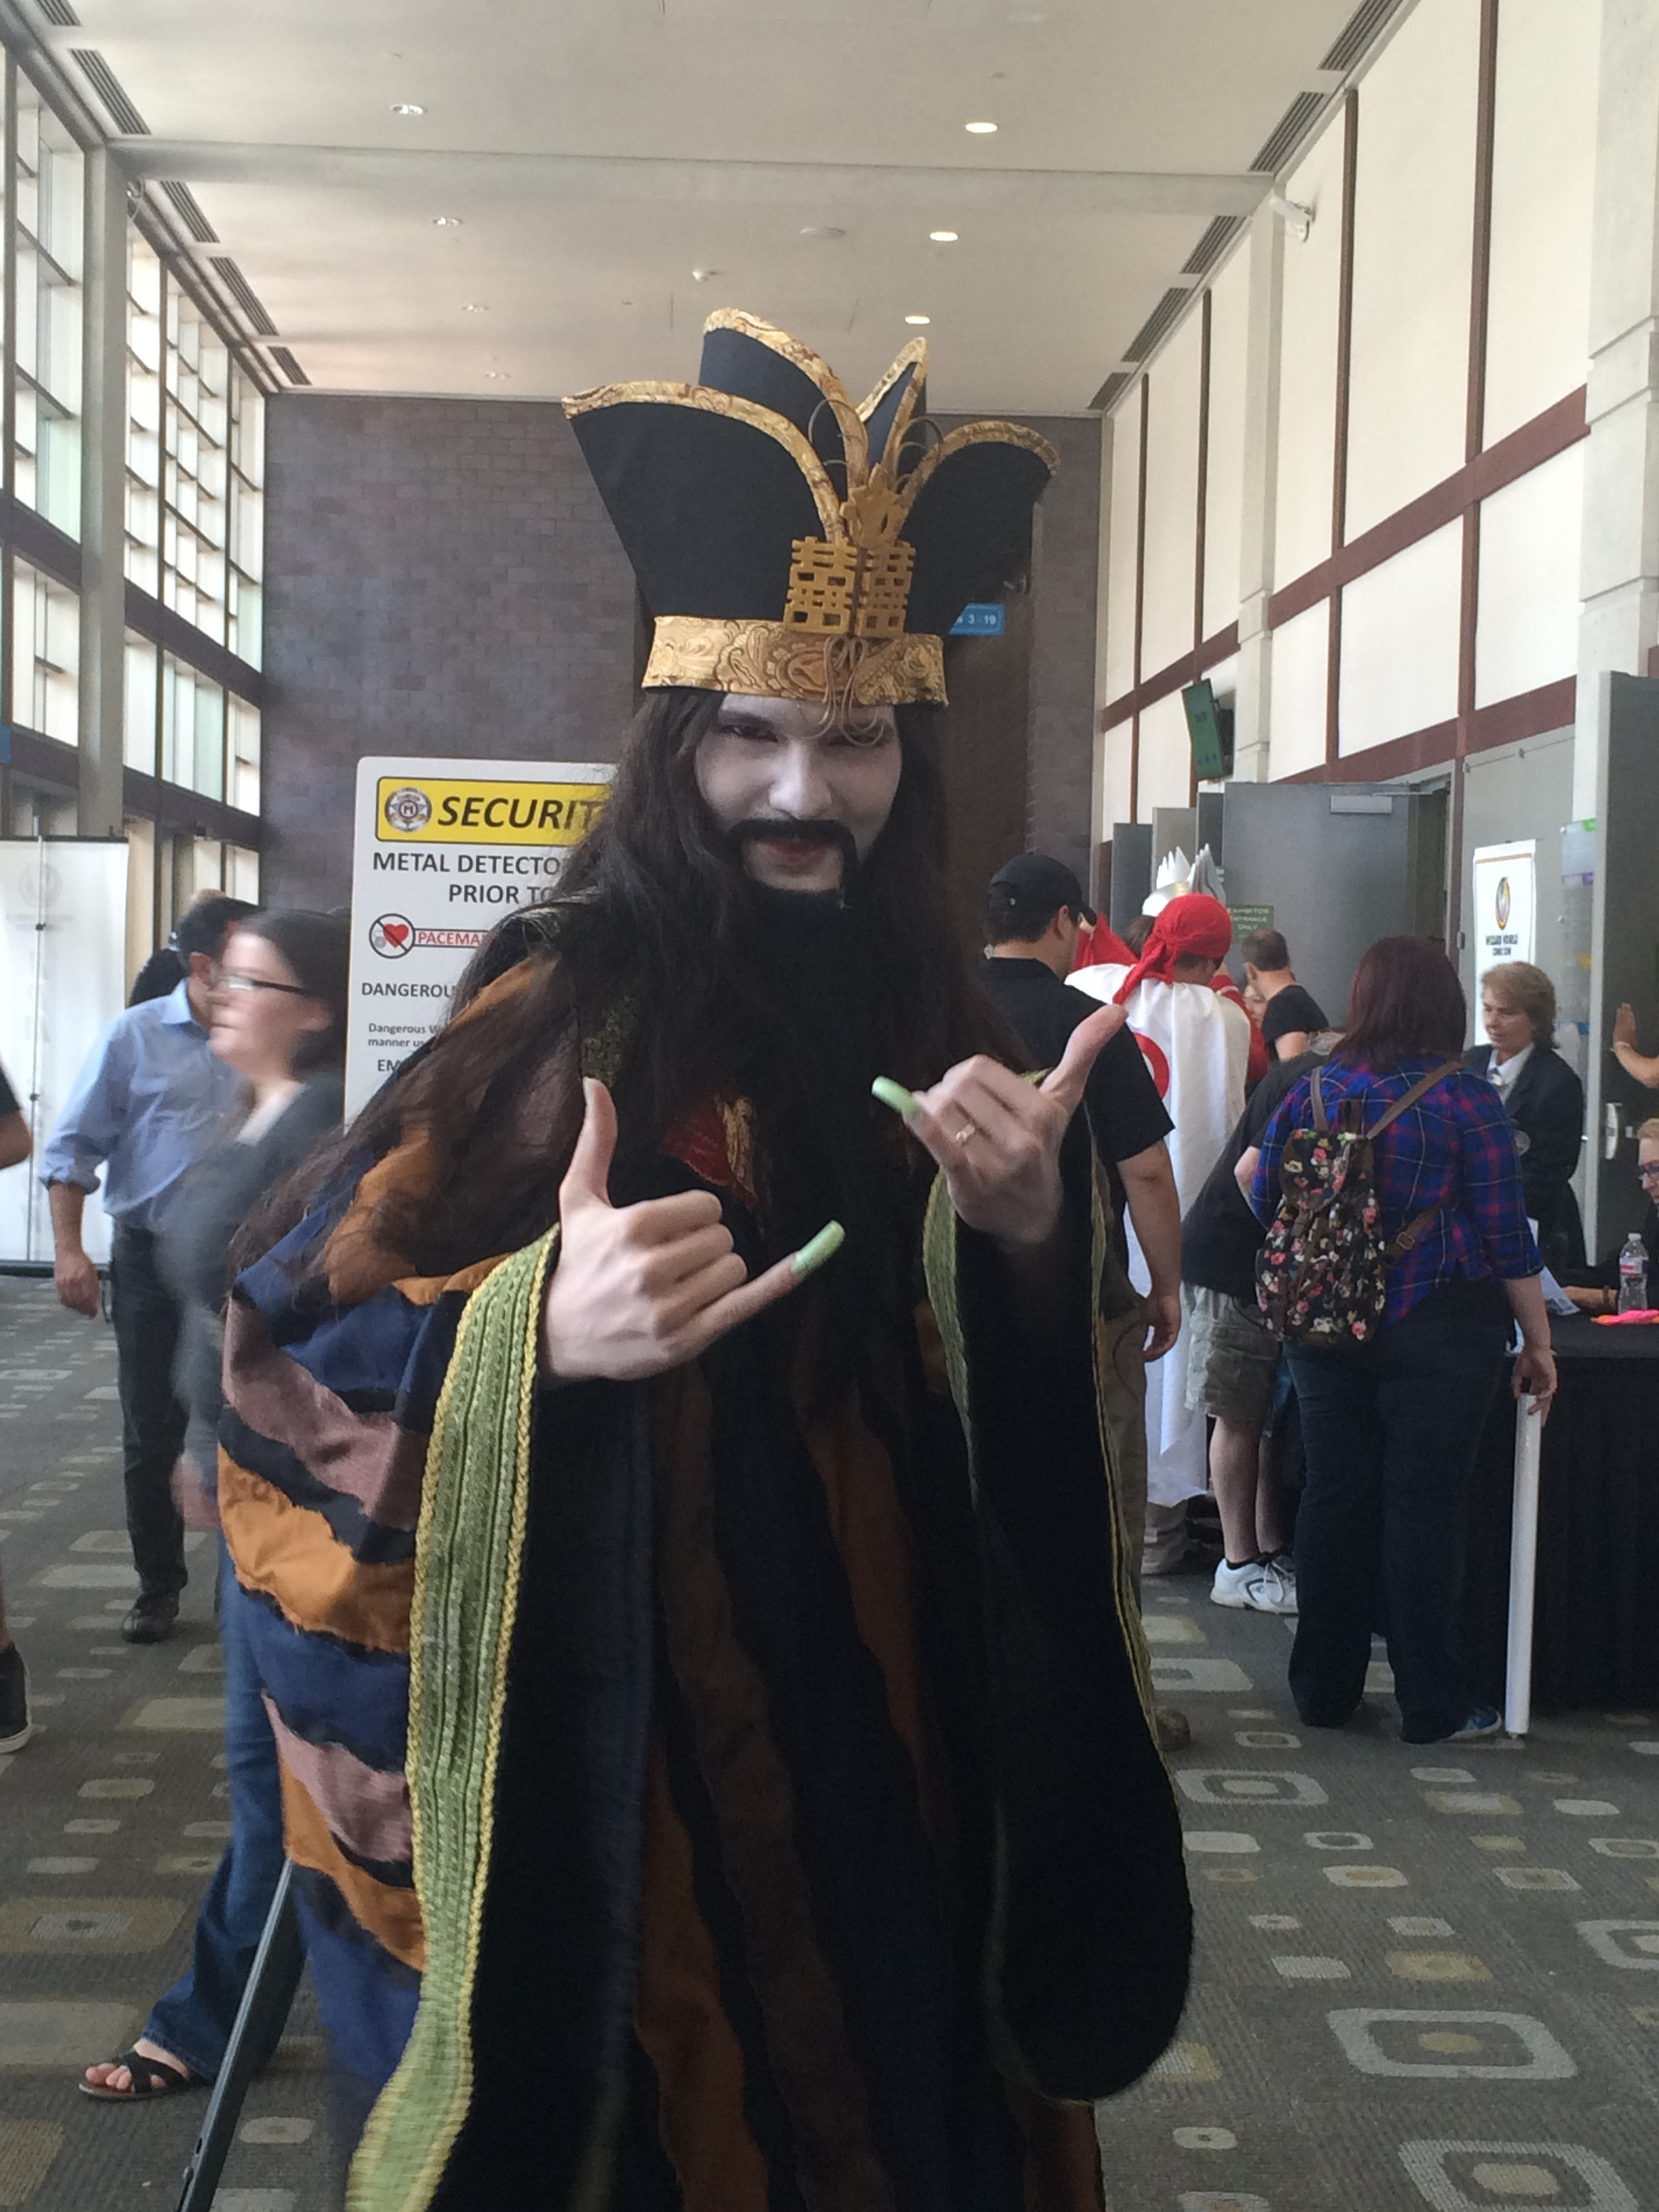 Comic Con <a href='http://aus.exprealty.com/index.php?types[]=1&types[]=2&areas[]=city:Austin&beds=0&baths=0&min=0&max=100000000&map=0&quick=1&submit=Search' title='Search Properties in Austin'>Austin</a> 2016